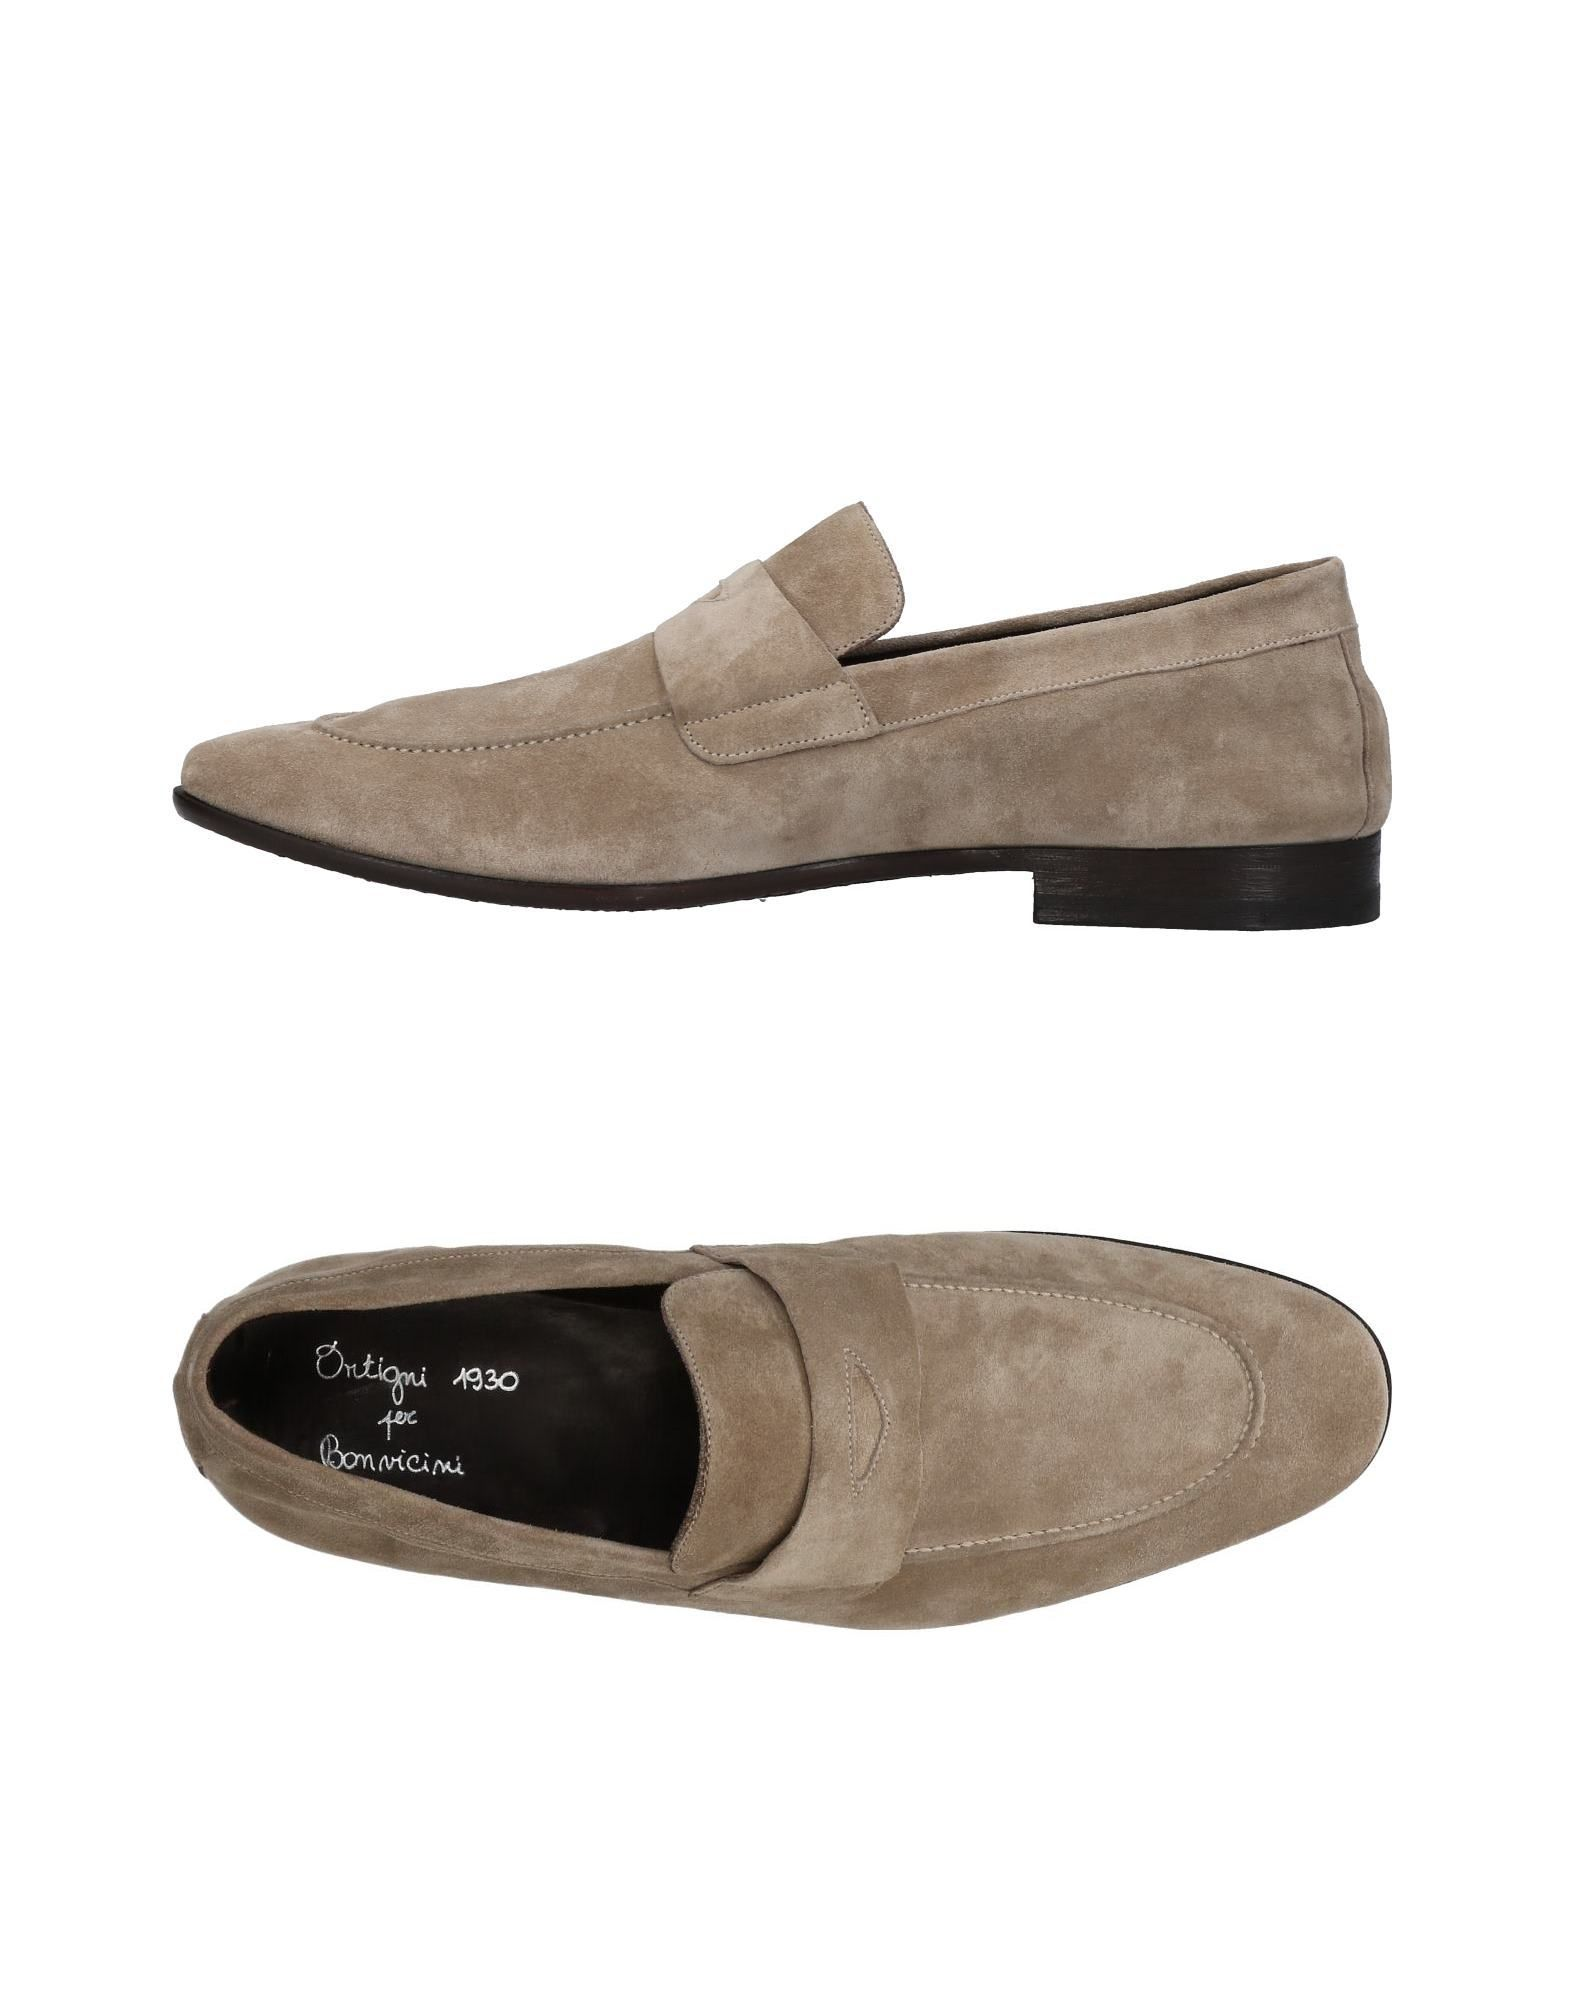 ORTIGNI Loafers in Khaki